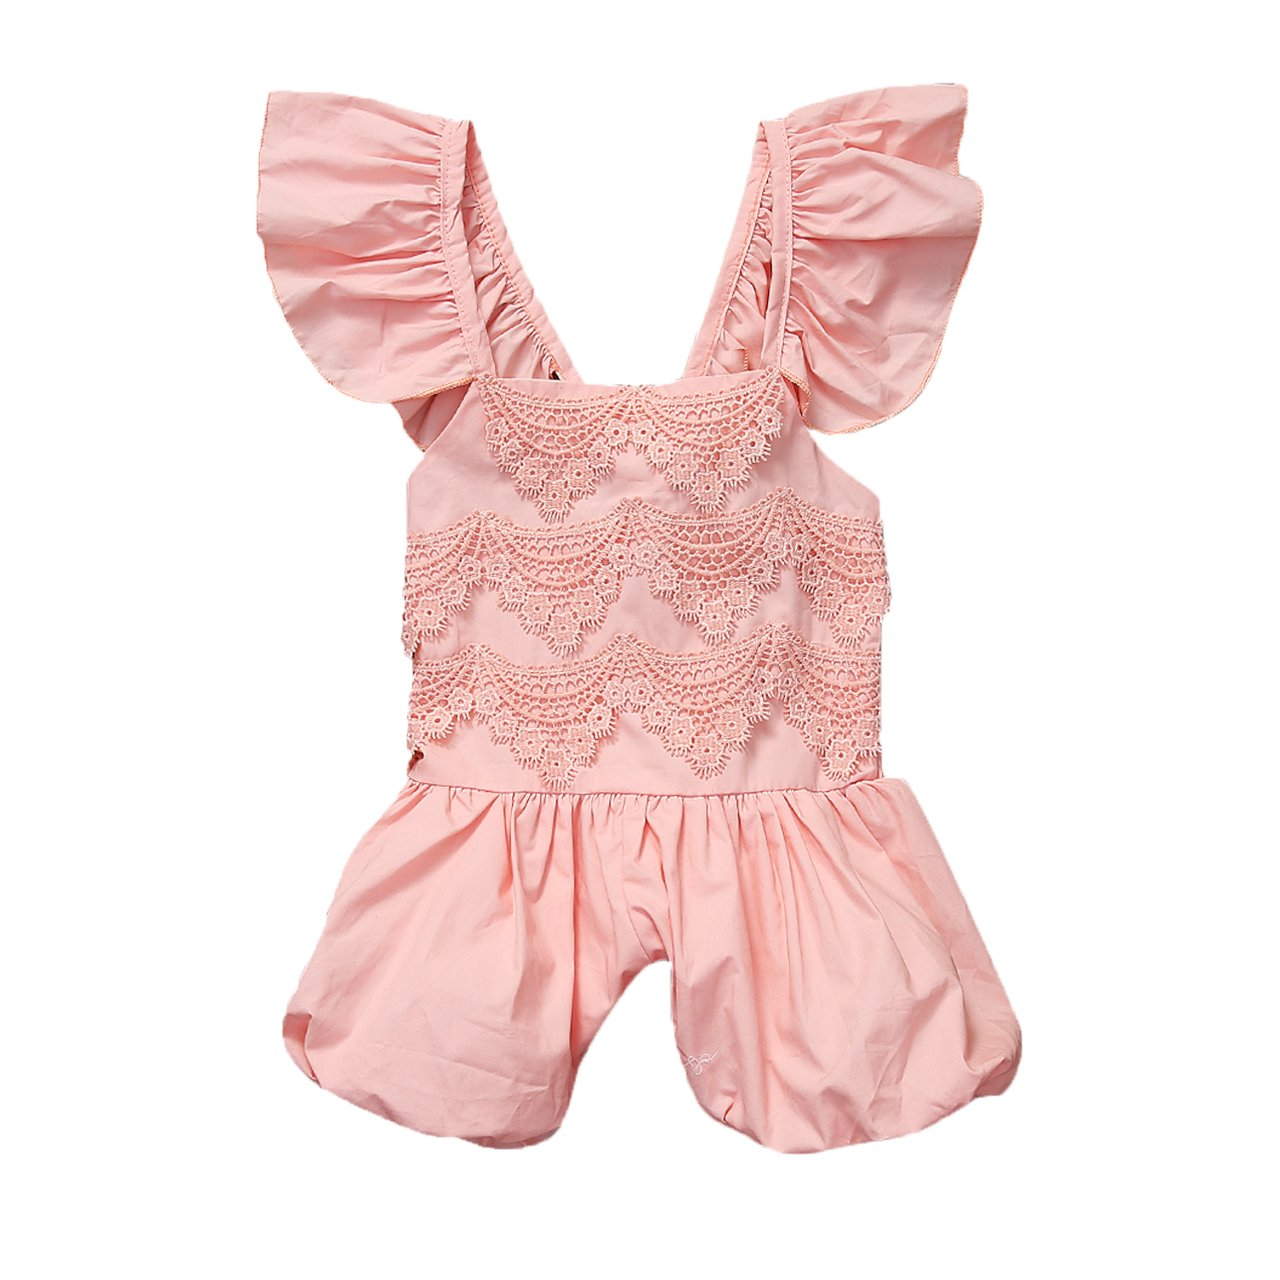 New Fashion Summer Baby Girls Clothes Lace Ruffle Romper Sleeveless Jumpsuit Backless Sunsuit Outfit